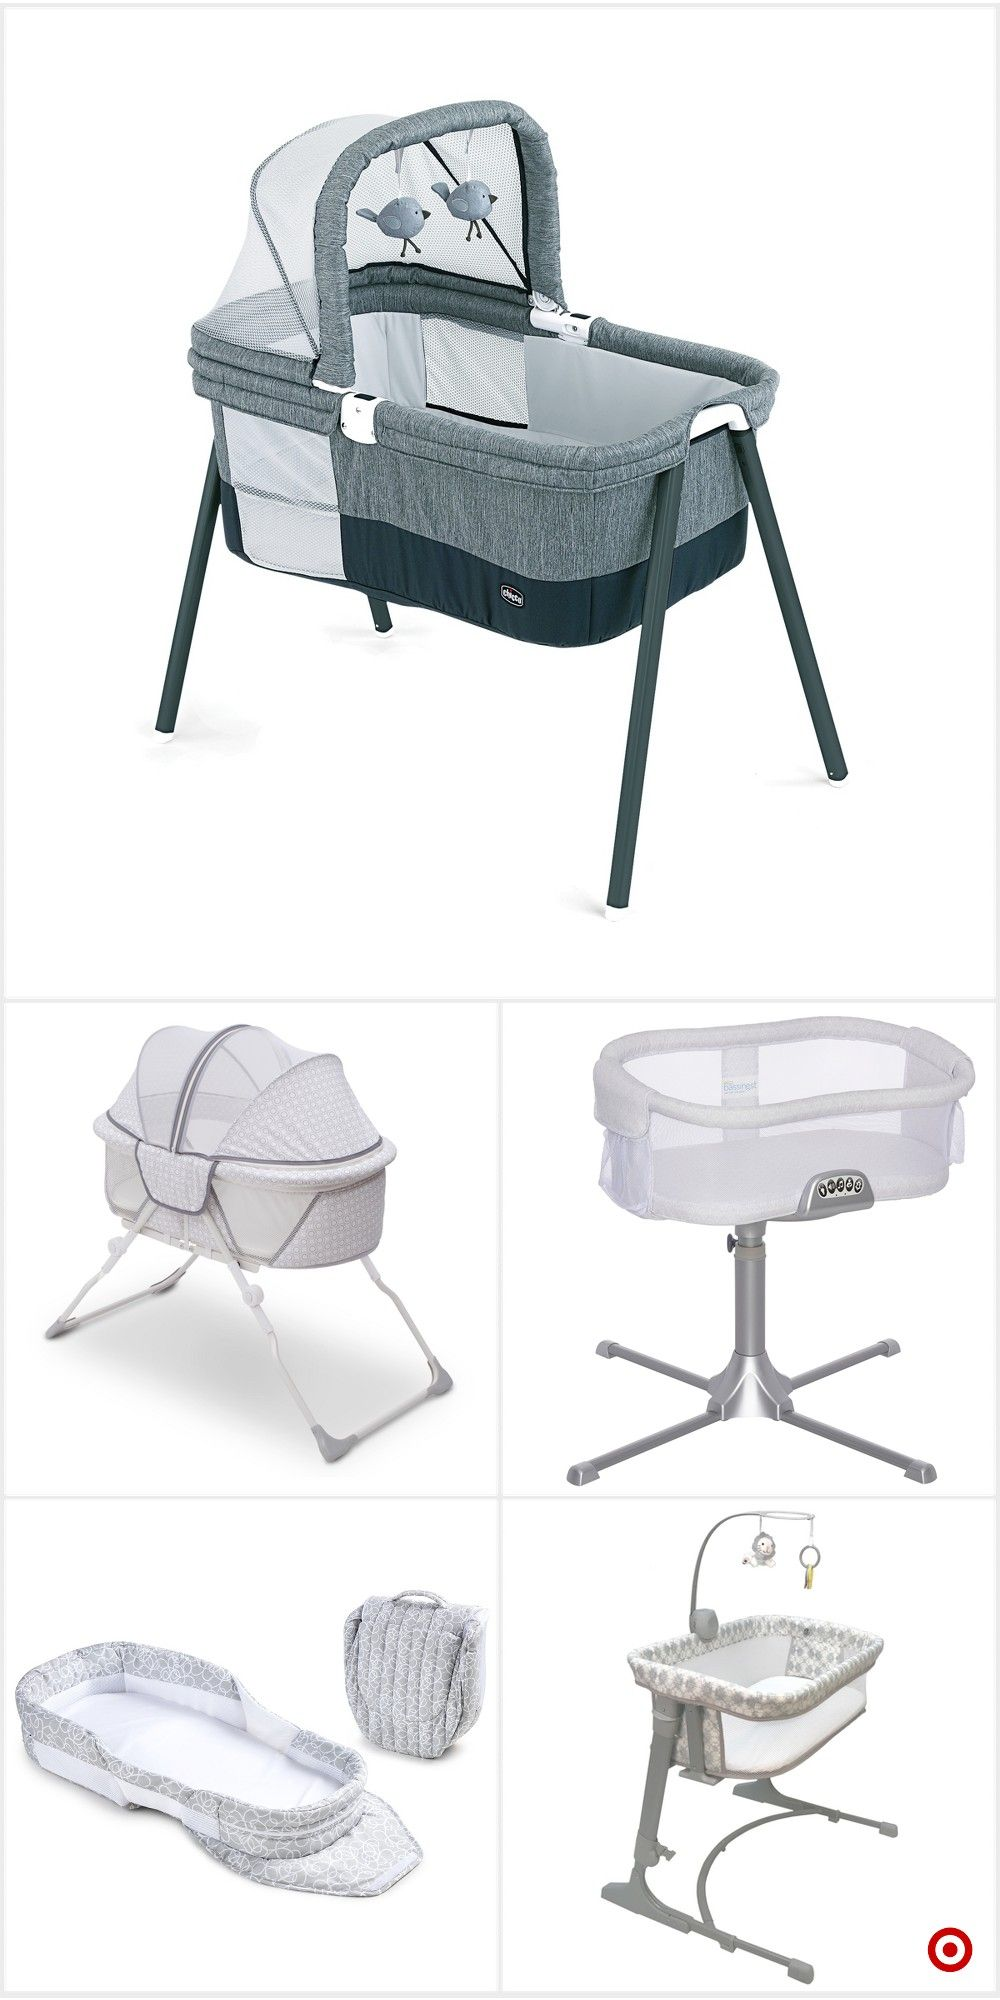 Shop Target For Bedside Sleeper Accessory You Will Love At Great